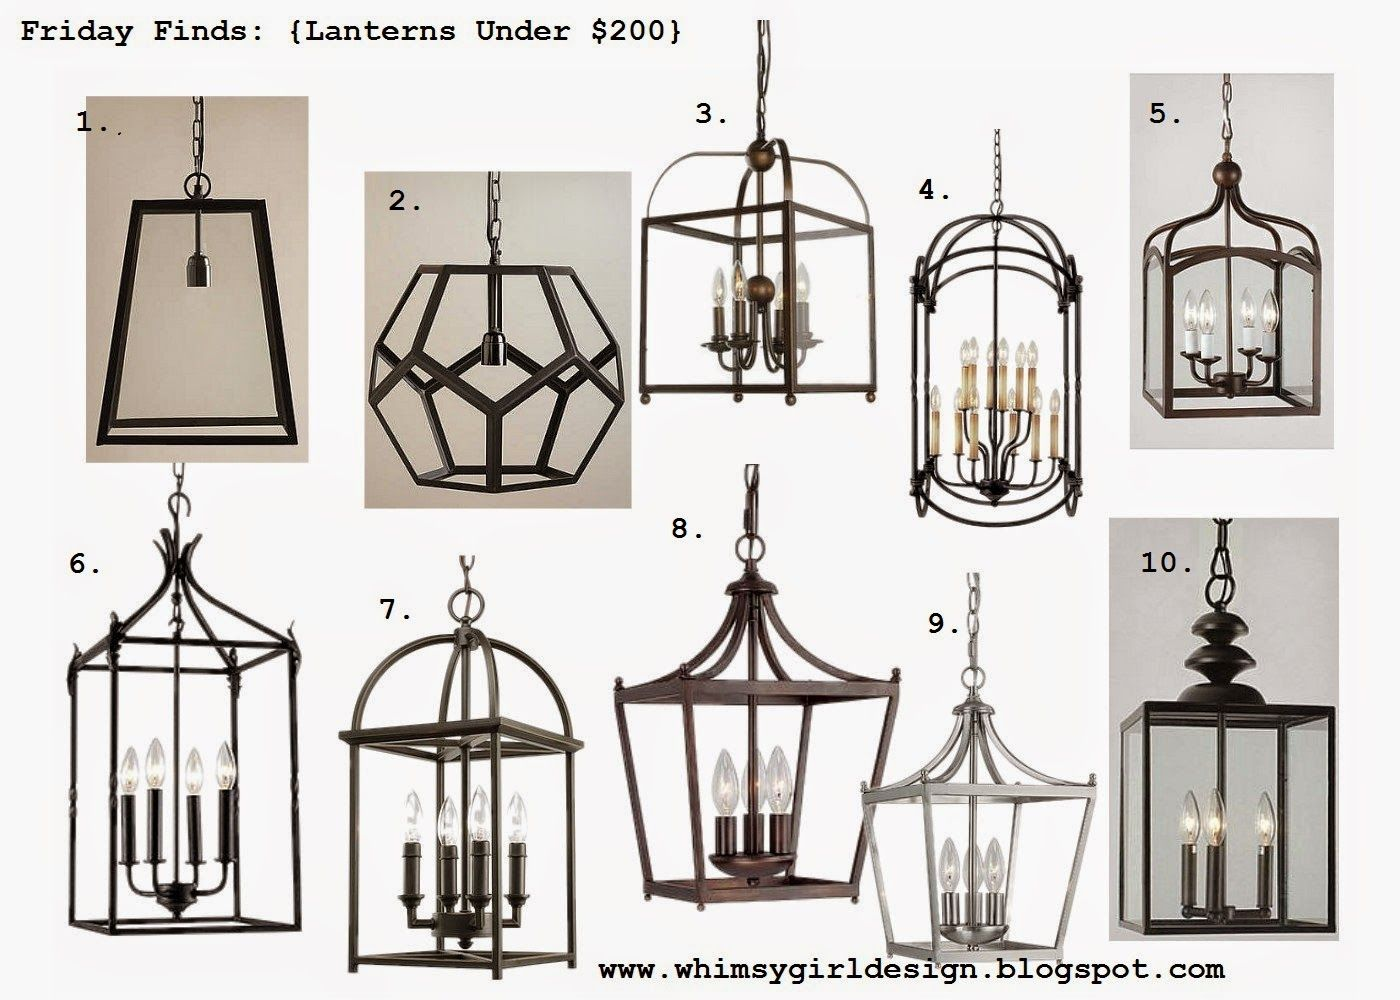 Back porch lighting Friday Finds Lanterns  sc 1 st  Pinterest & Best 25+ Lantern chandelier ideas on Pinterest | Lantern pendant ... azcodes.com